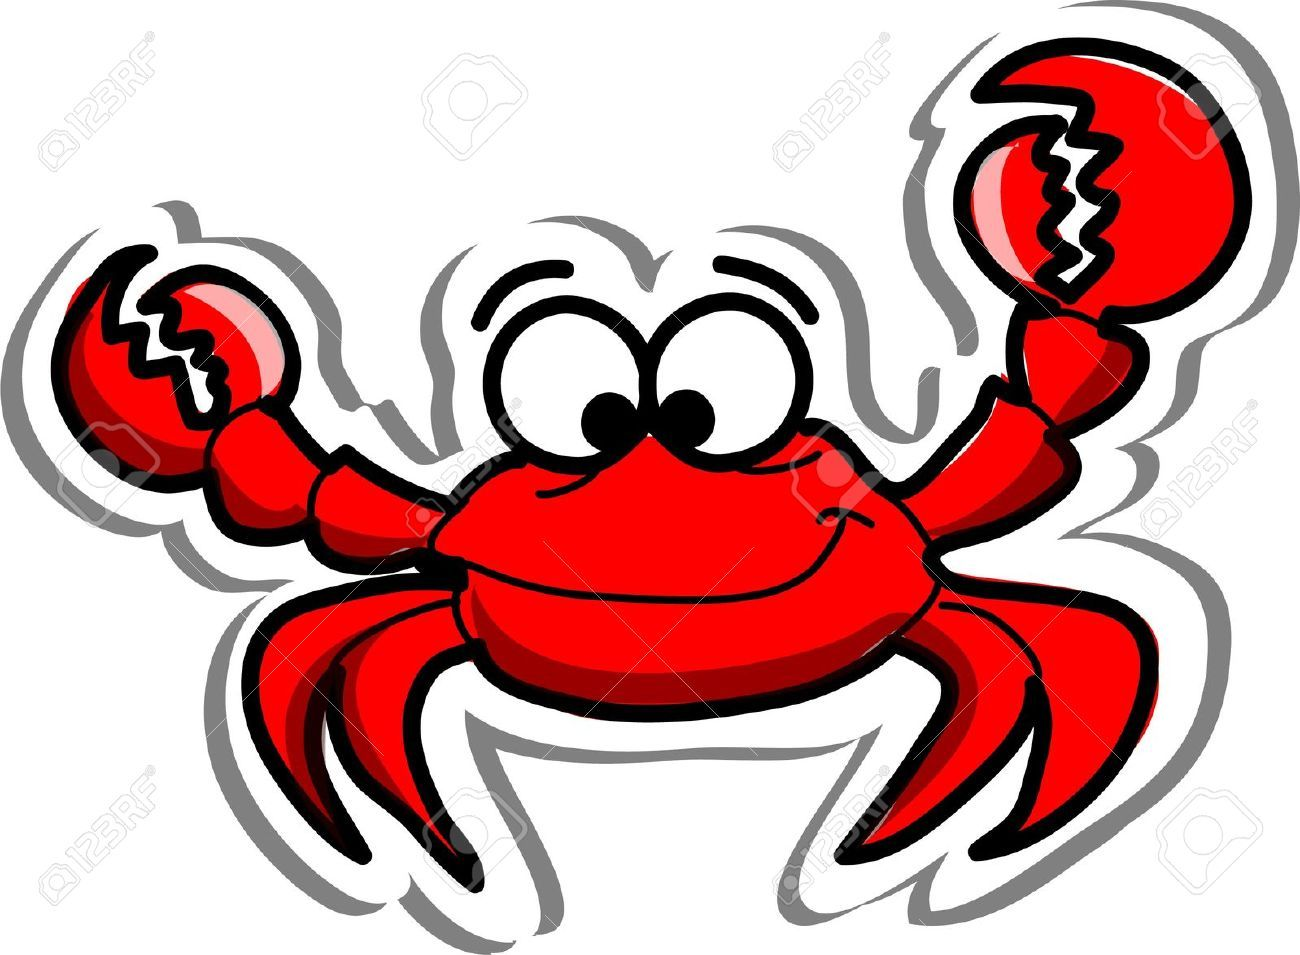 medium resolution of crabs stock illustrations cliparts and royalty free crabs vectors